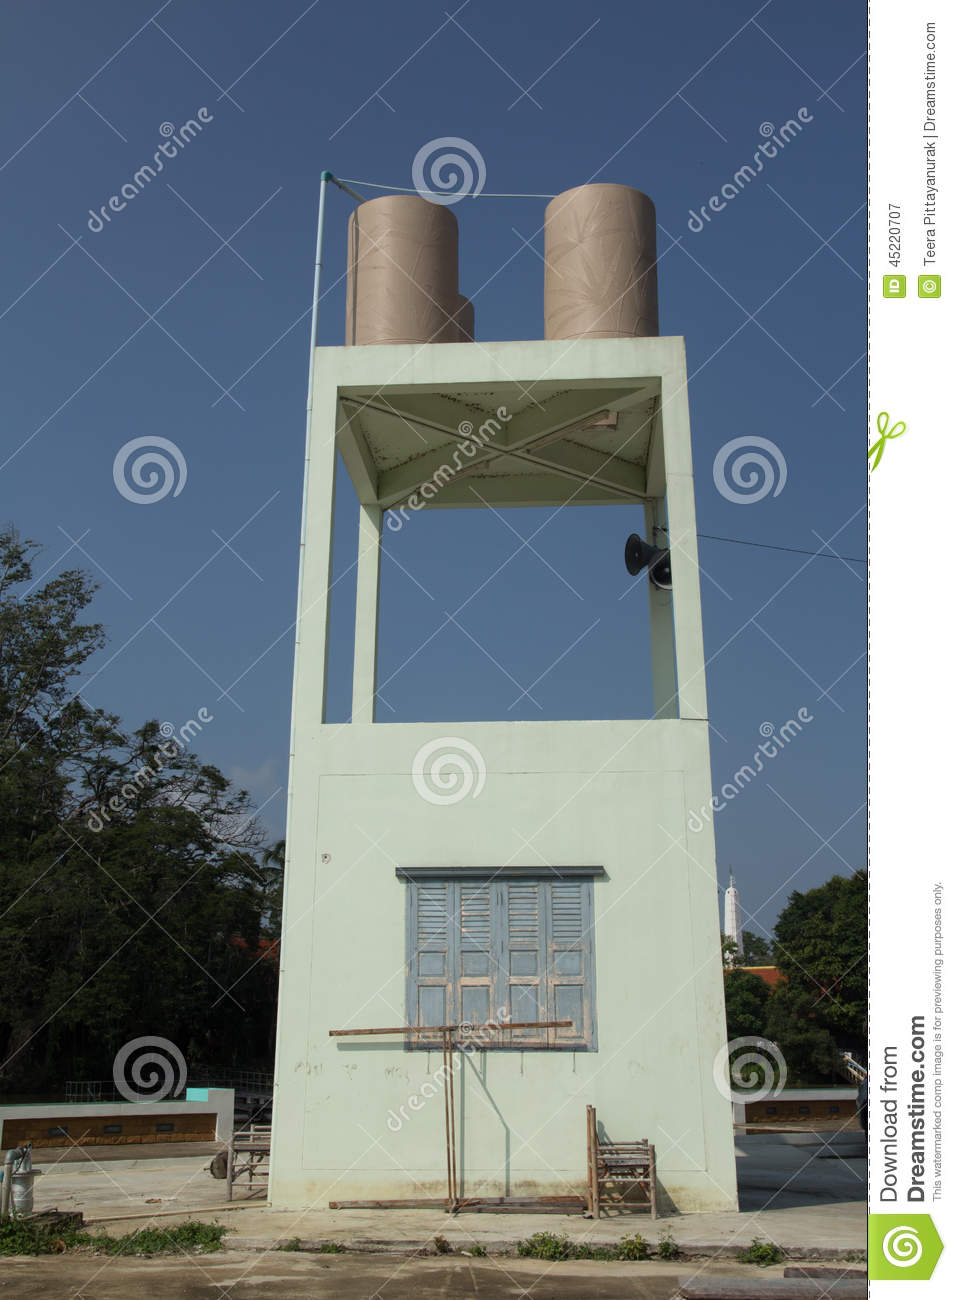 Transmission tower water